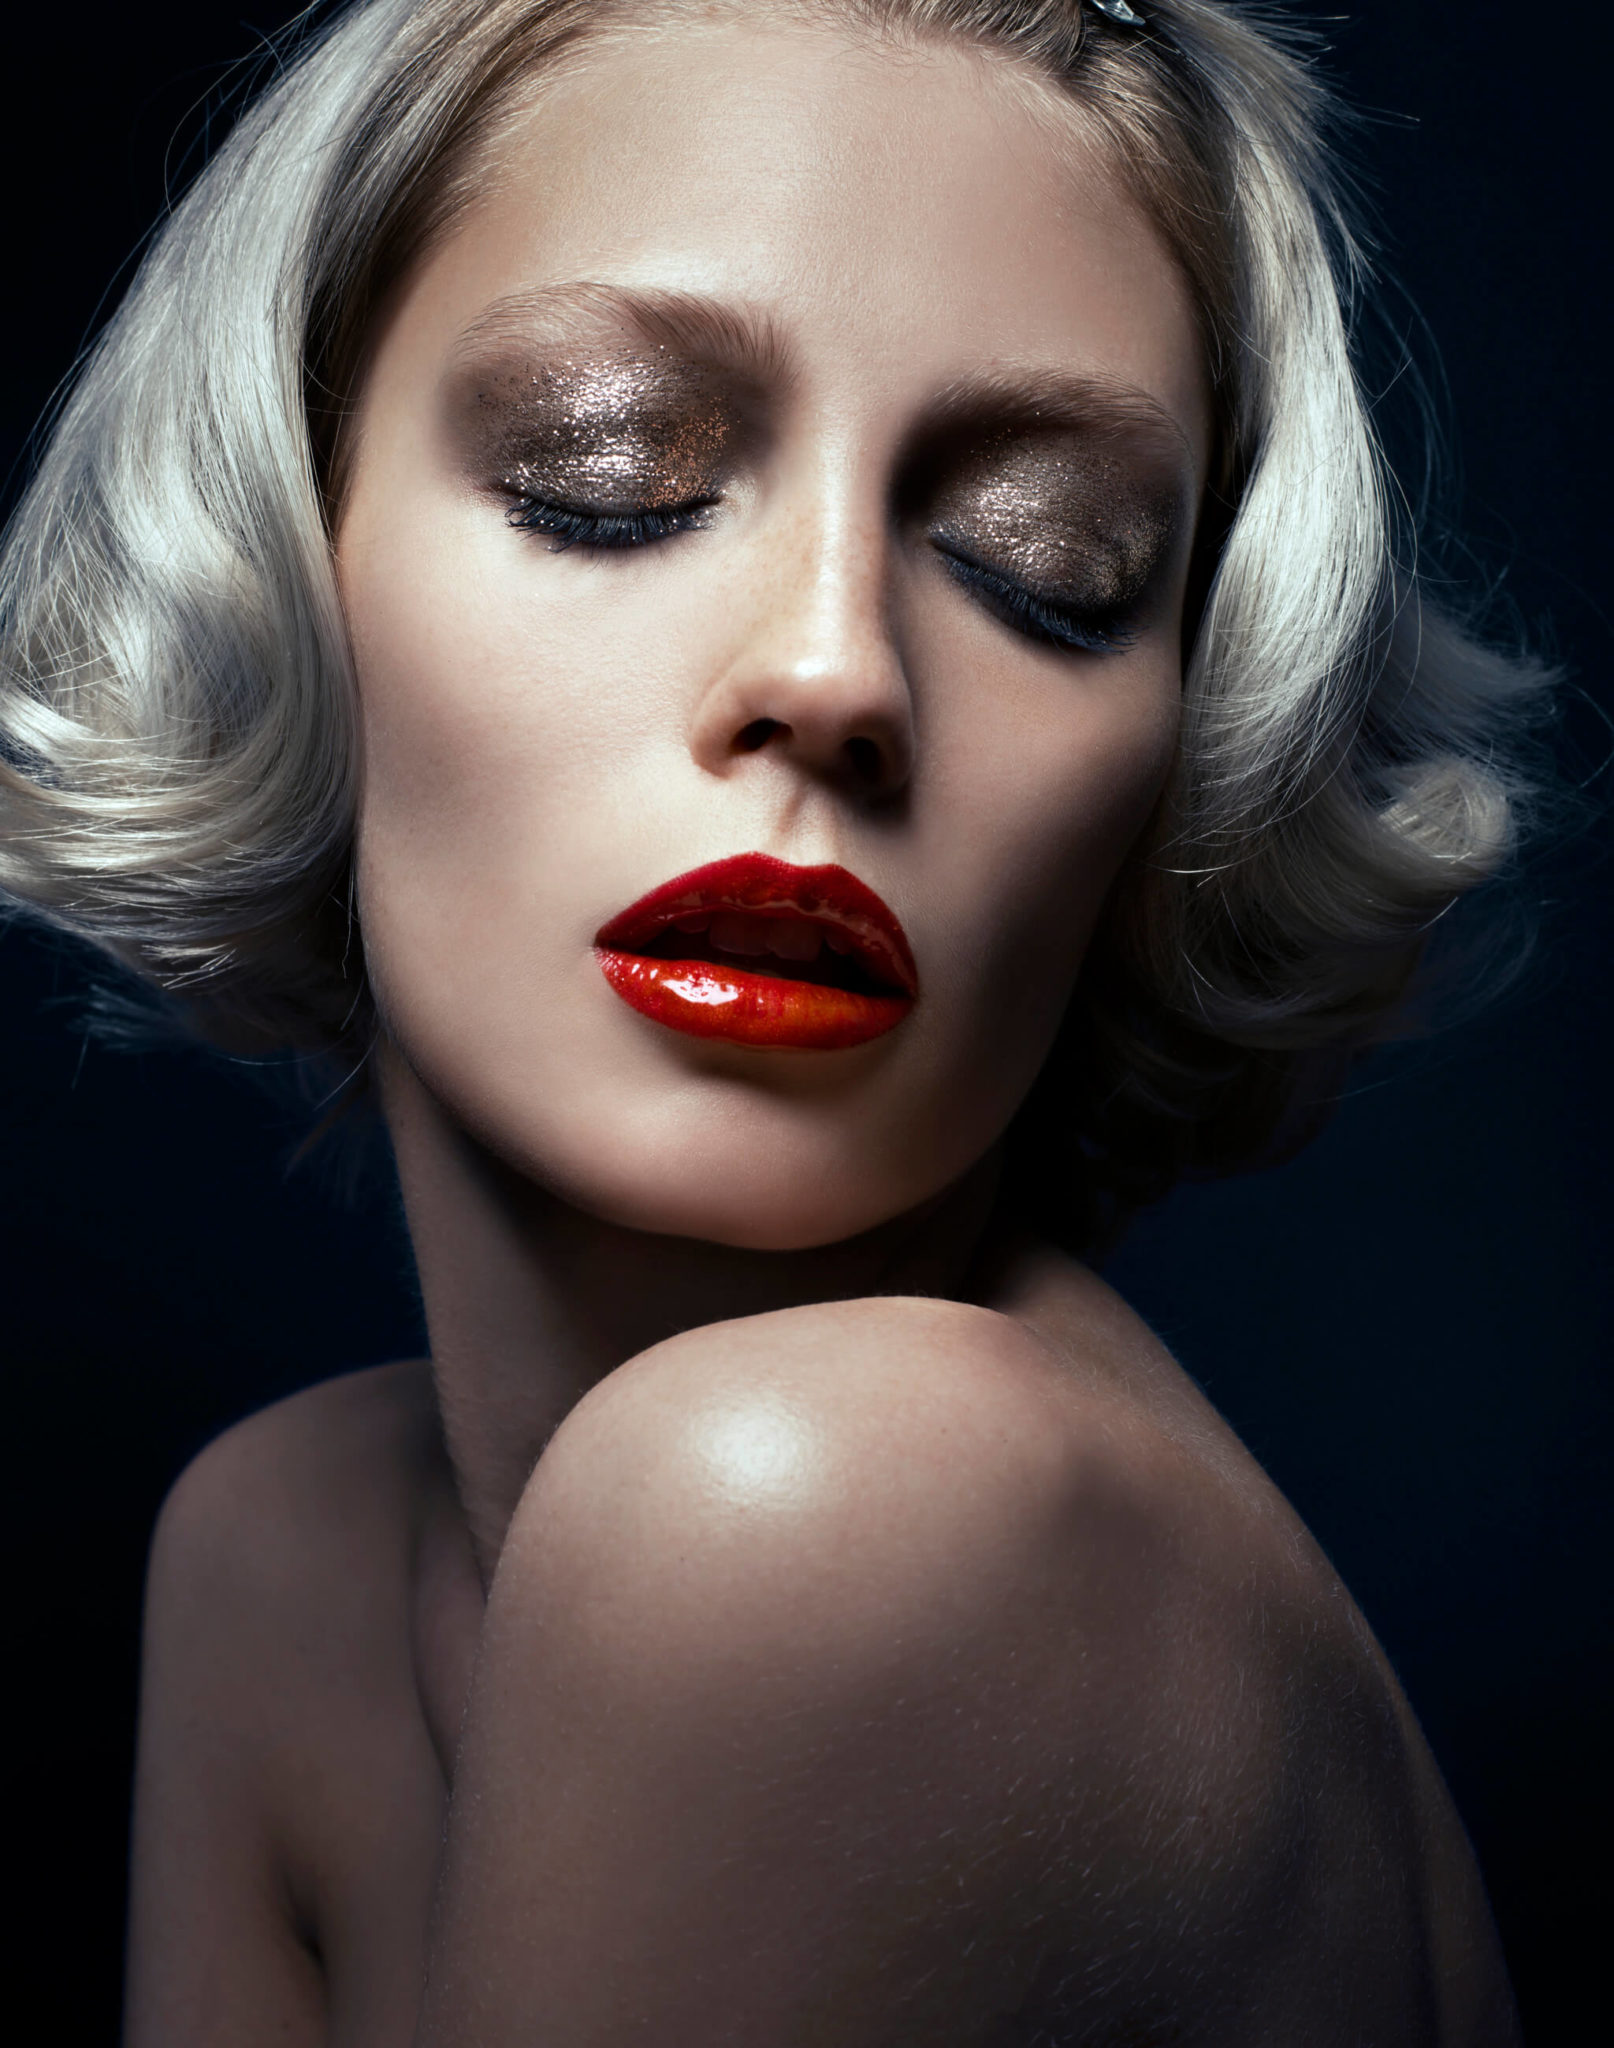 Beauty makeup shot with red lips glitter glamour by chris-singer-chrissinger